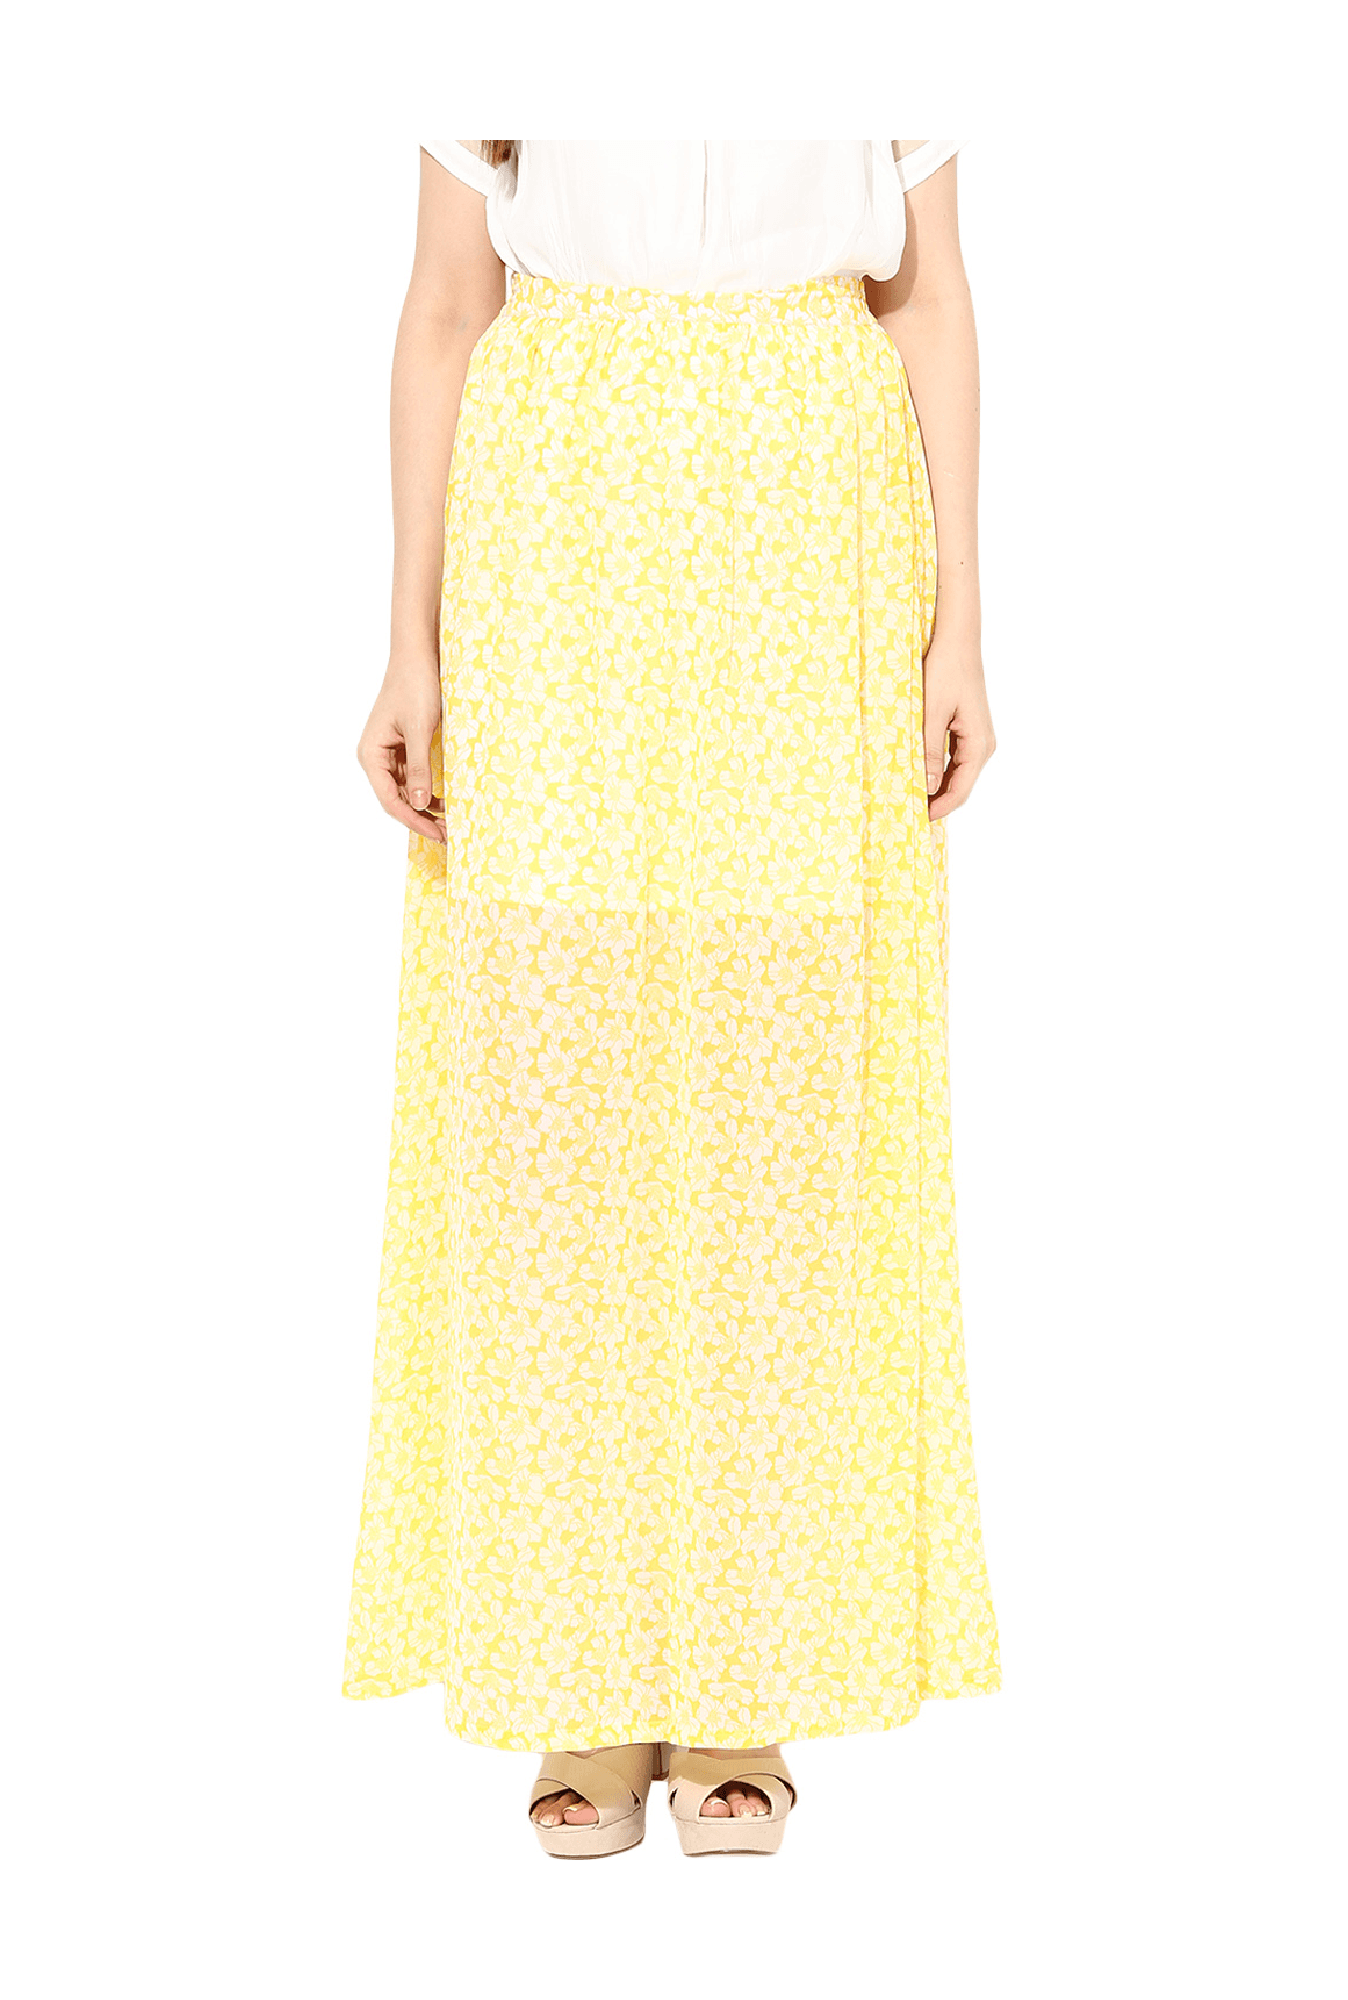 d18db6a466 Yellow Floral Print Maxi Skirt - Data Dynamic AG